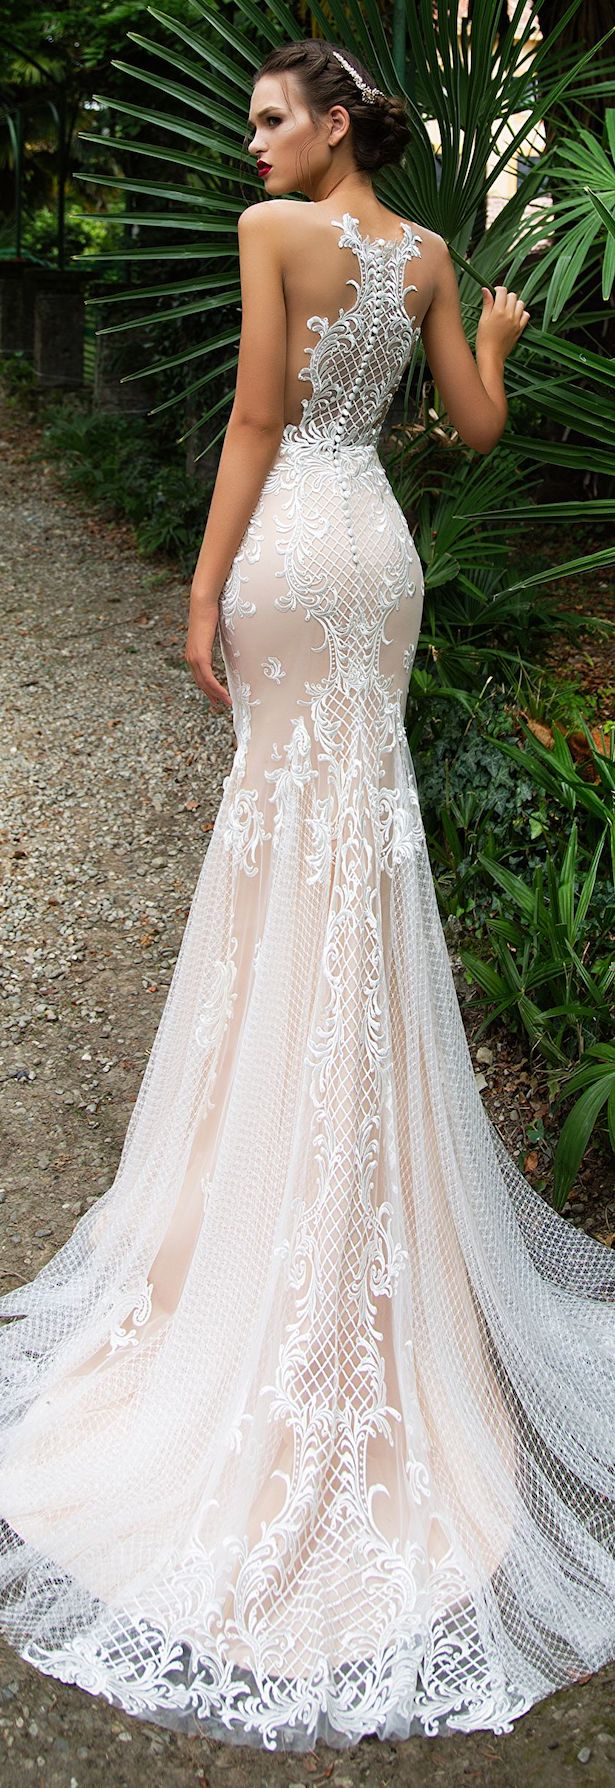 Wedding Dress by Milla Nova White Desire 2017 Bridal Collection - Salma